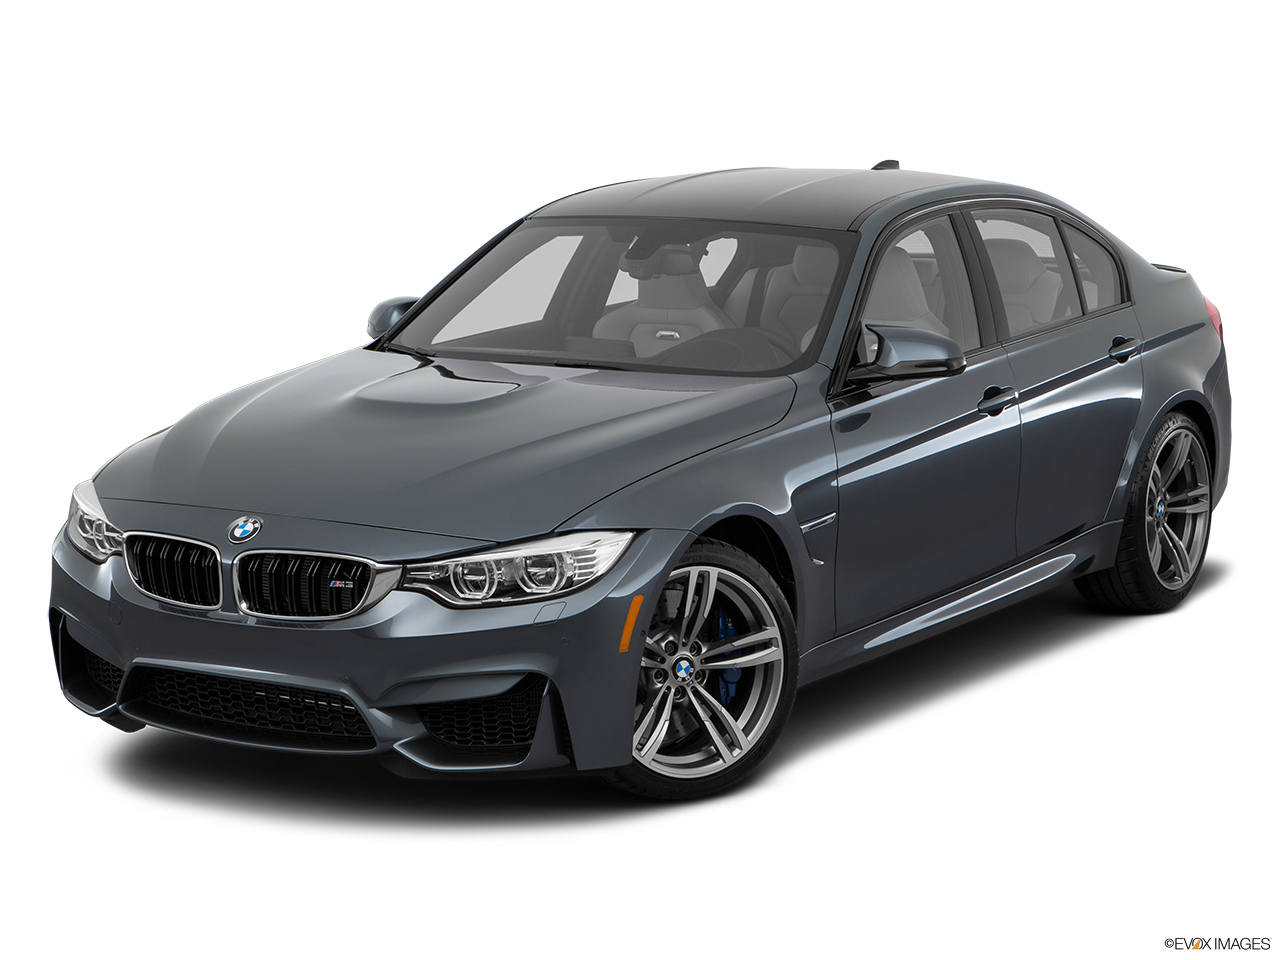 Bmw M3 2016 3 0t In Uae New Car Prices Specs Reviews